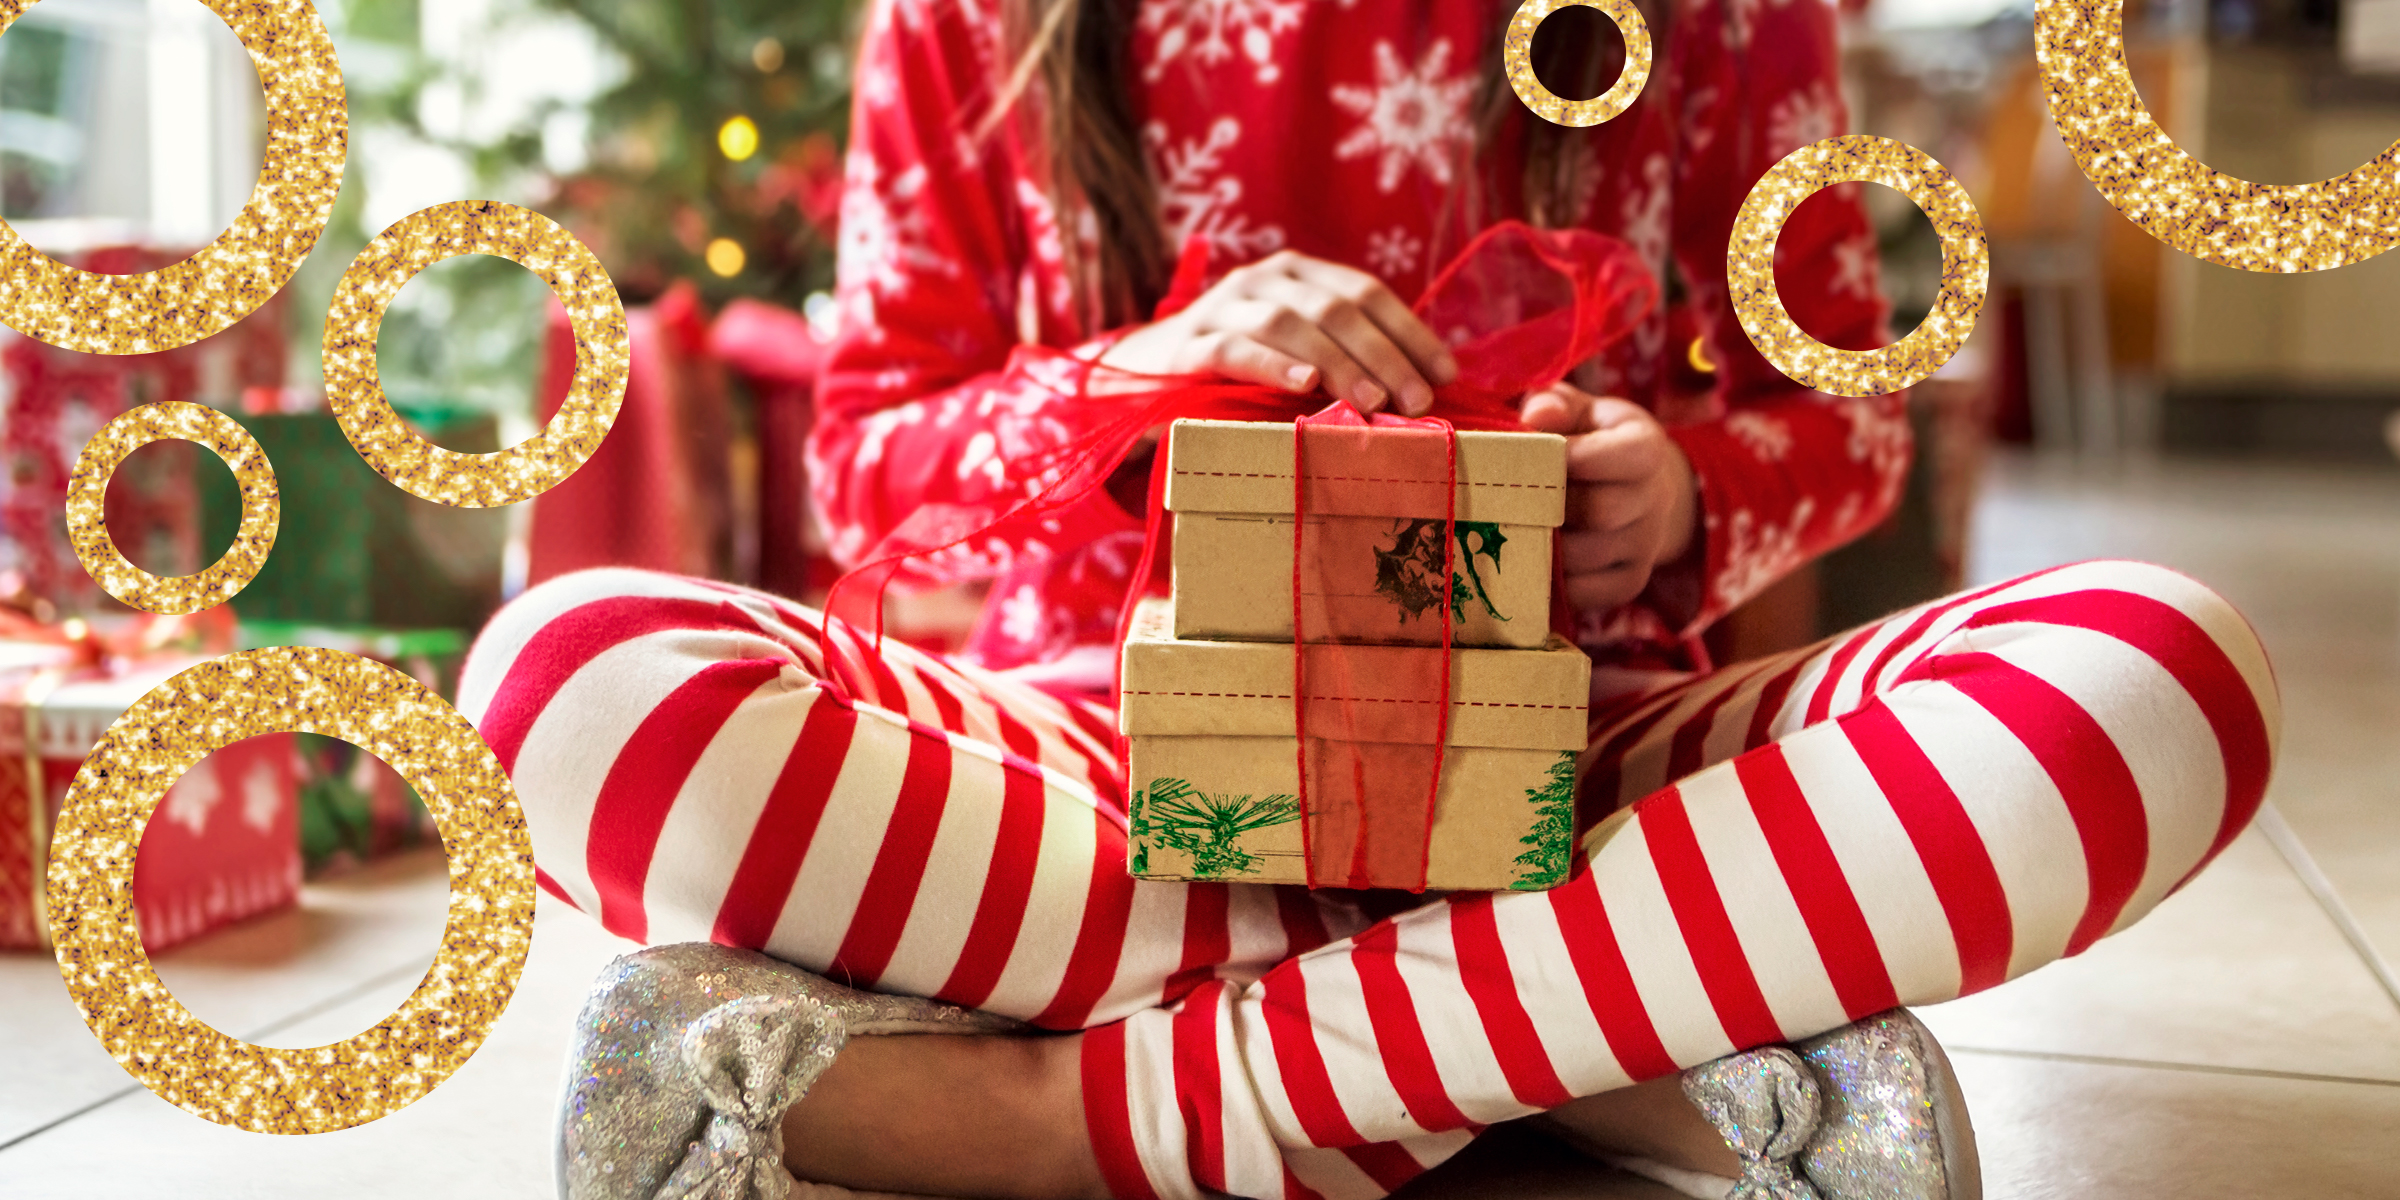 My Candy Love Christmas 2020 Present Location The Best Gifts for 9 Year Olds for 2020   TODAY